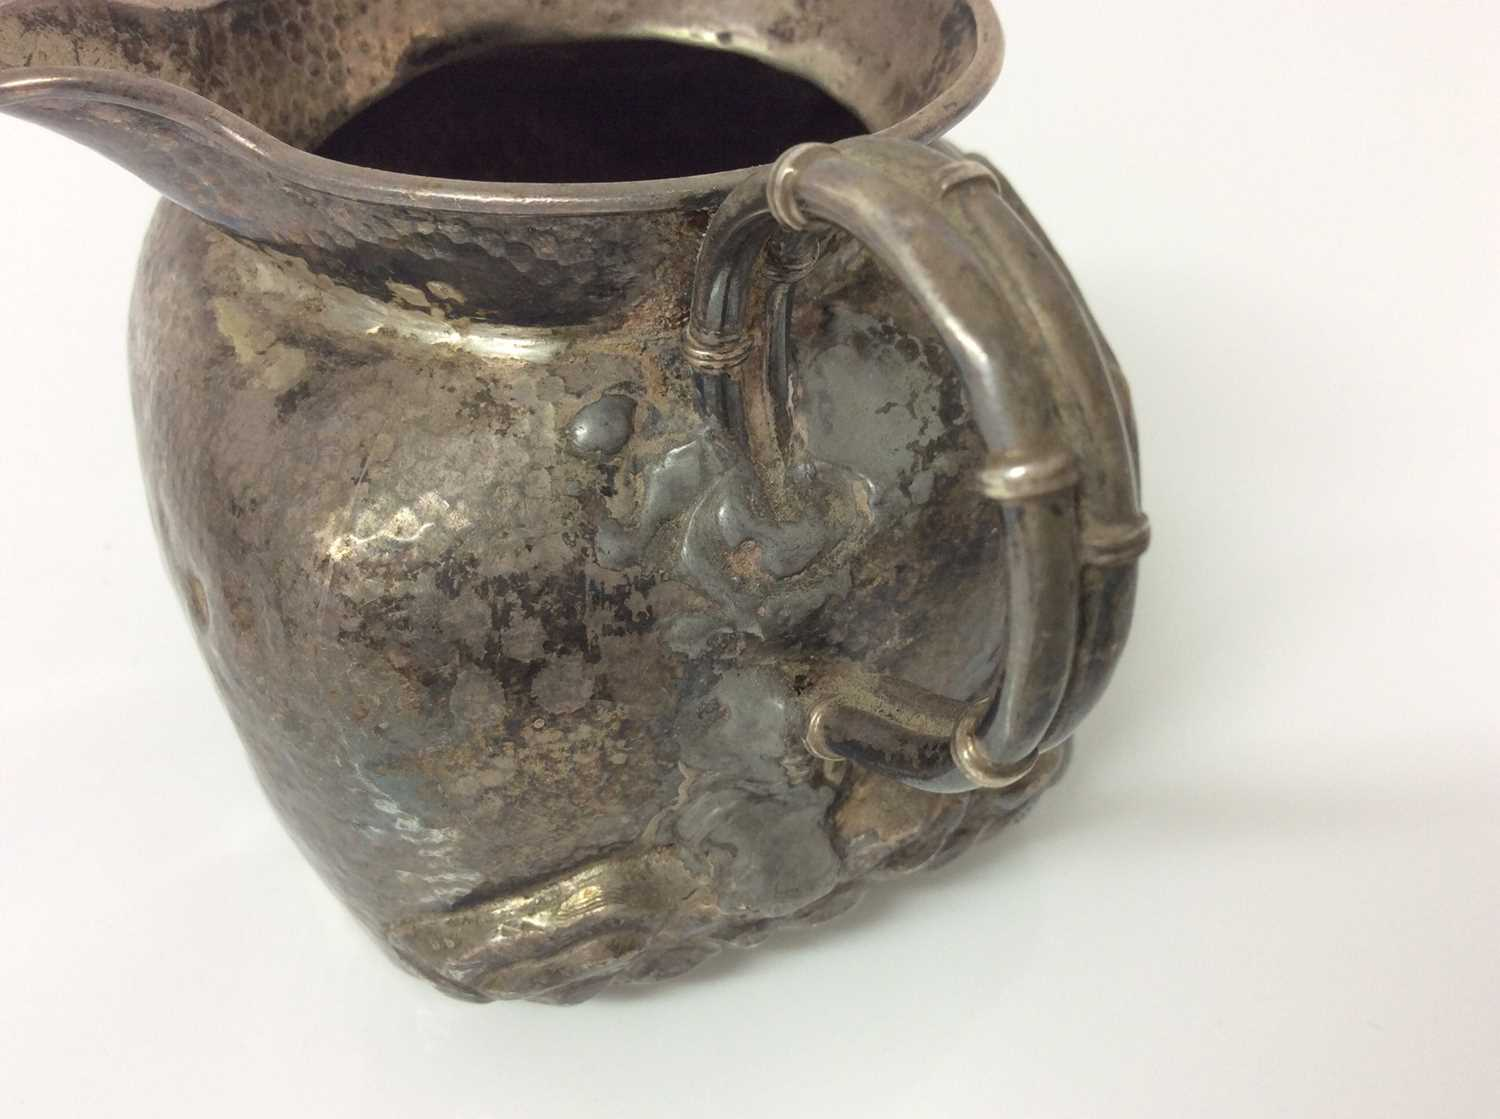 Chinese silver teapot and jug - Image 10 of 12